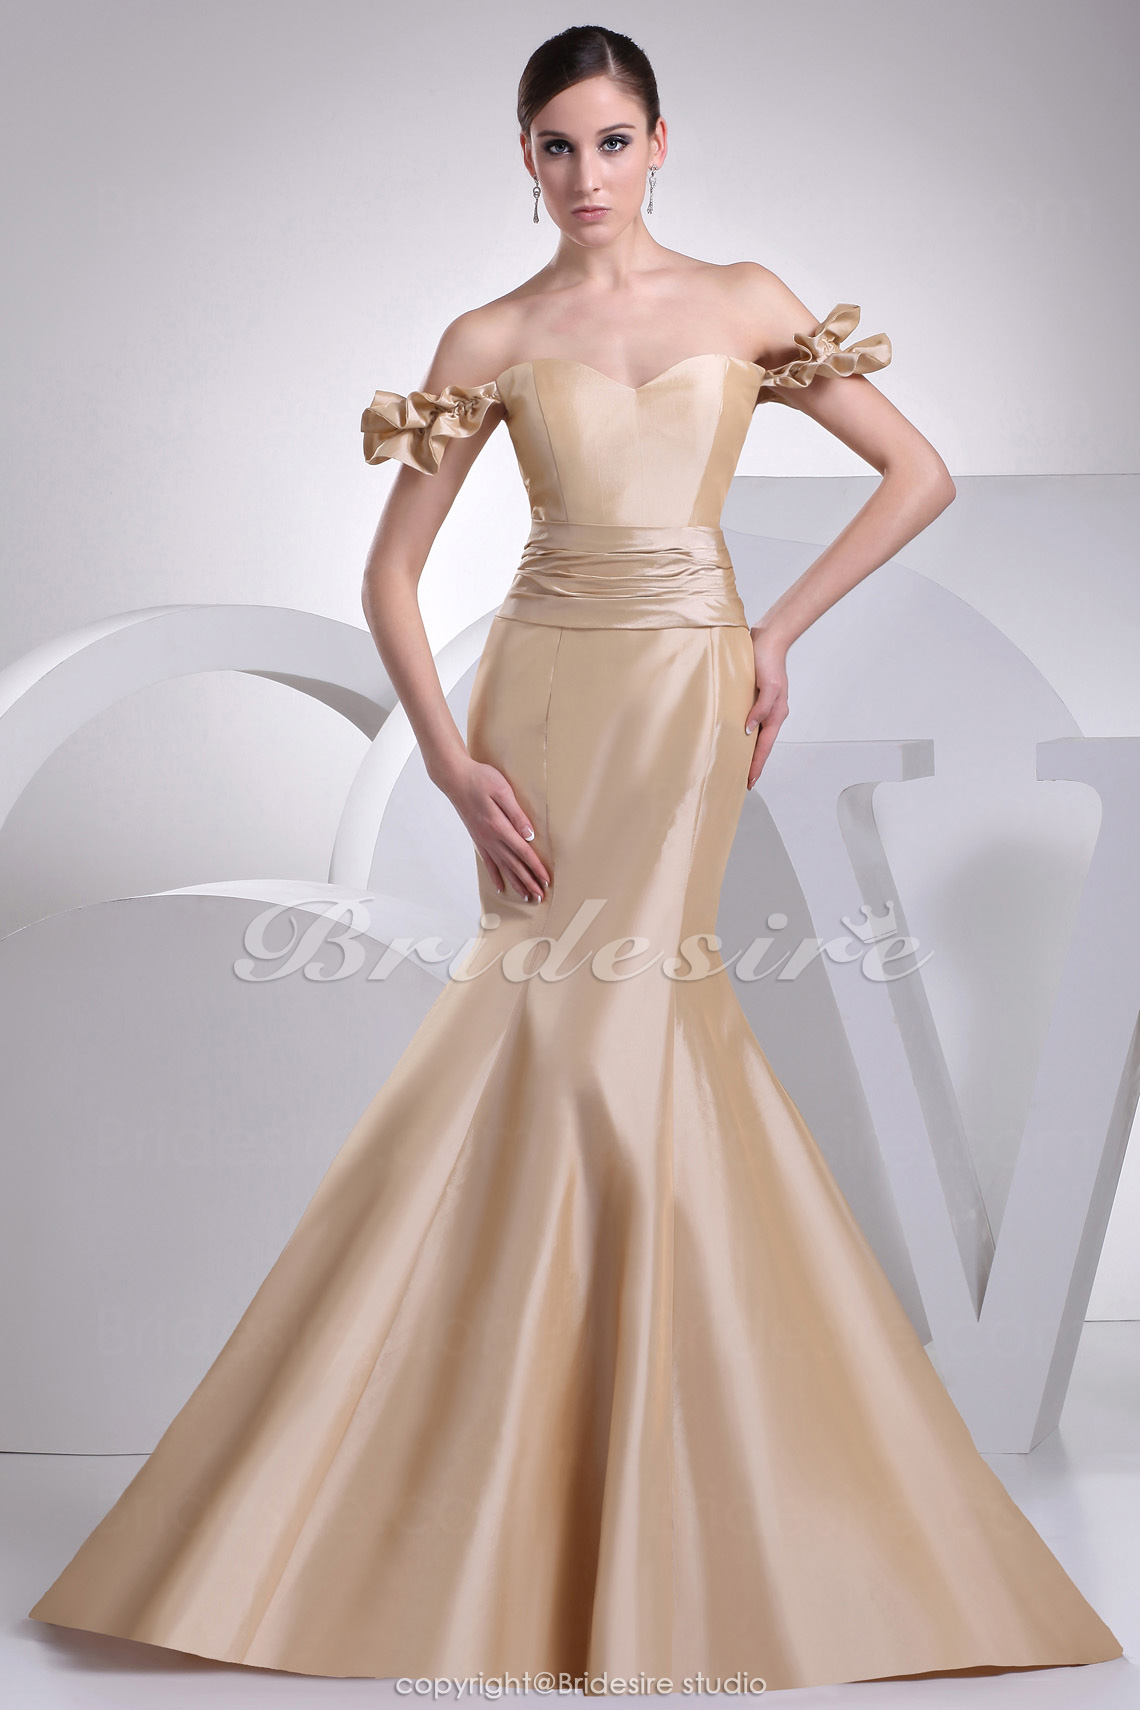 Trumpet/Mermaid Sweetheart Off-the-shoulder Sweep Train Sleeveless Taffeta Dress